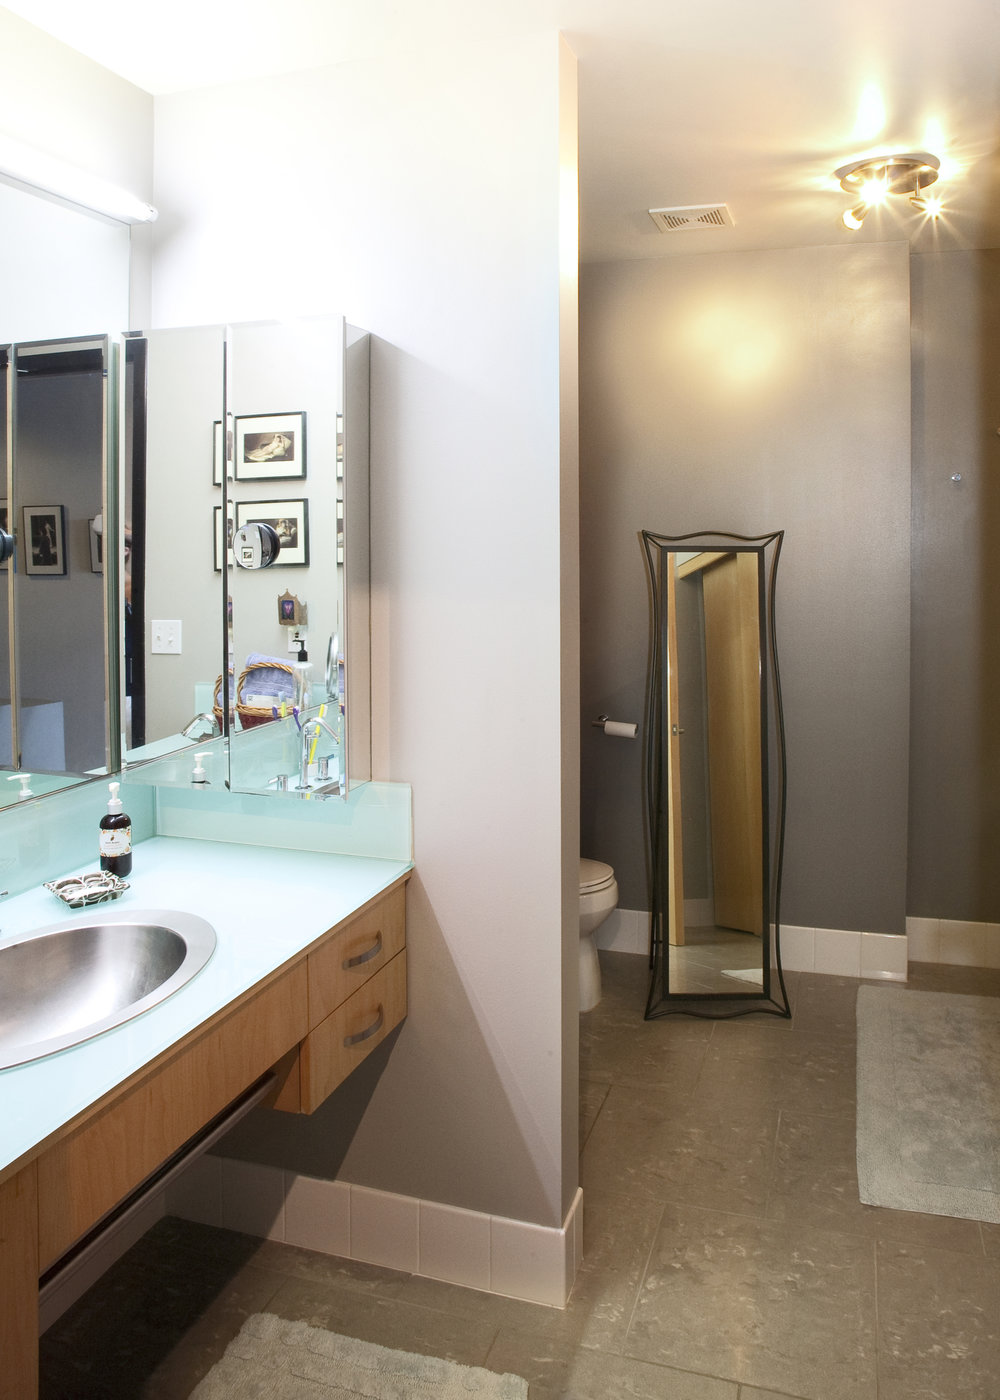 bathroom_crop.jpg